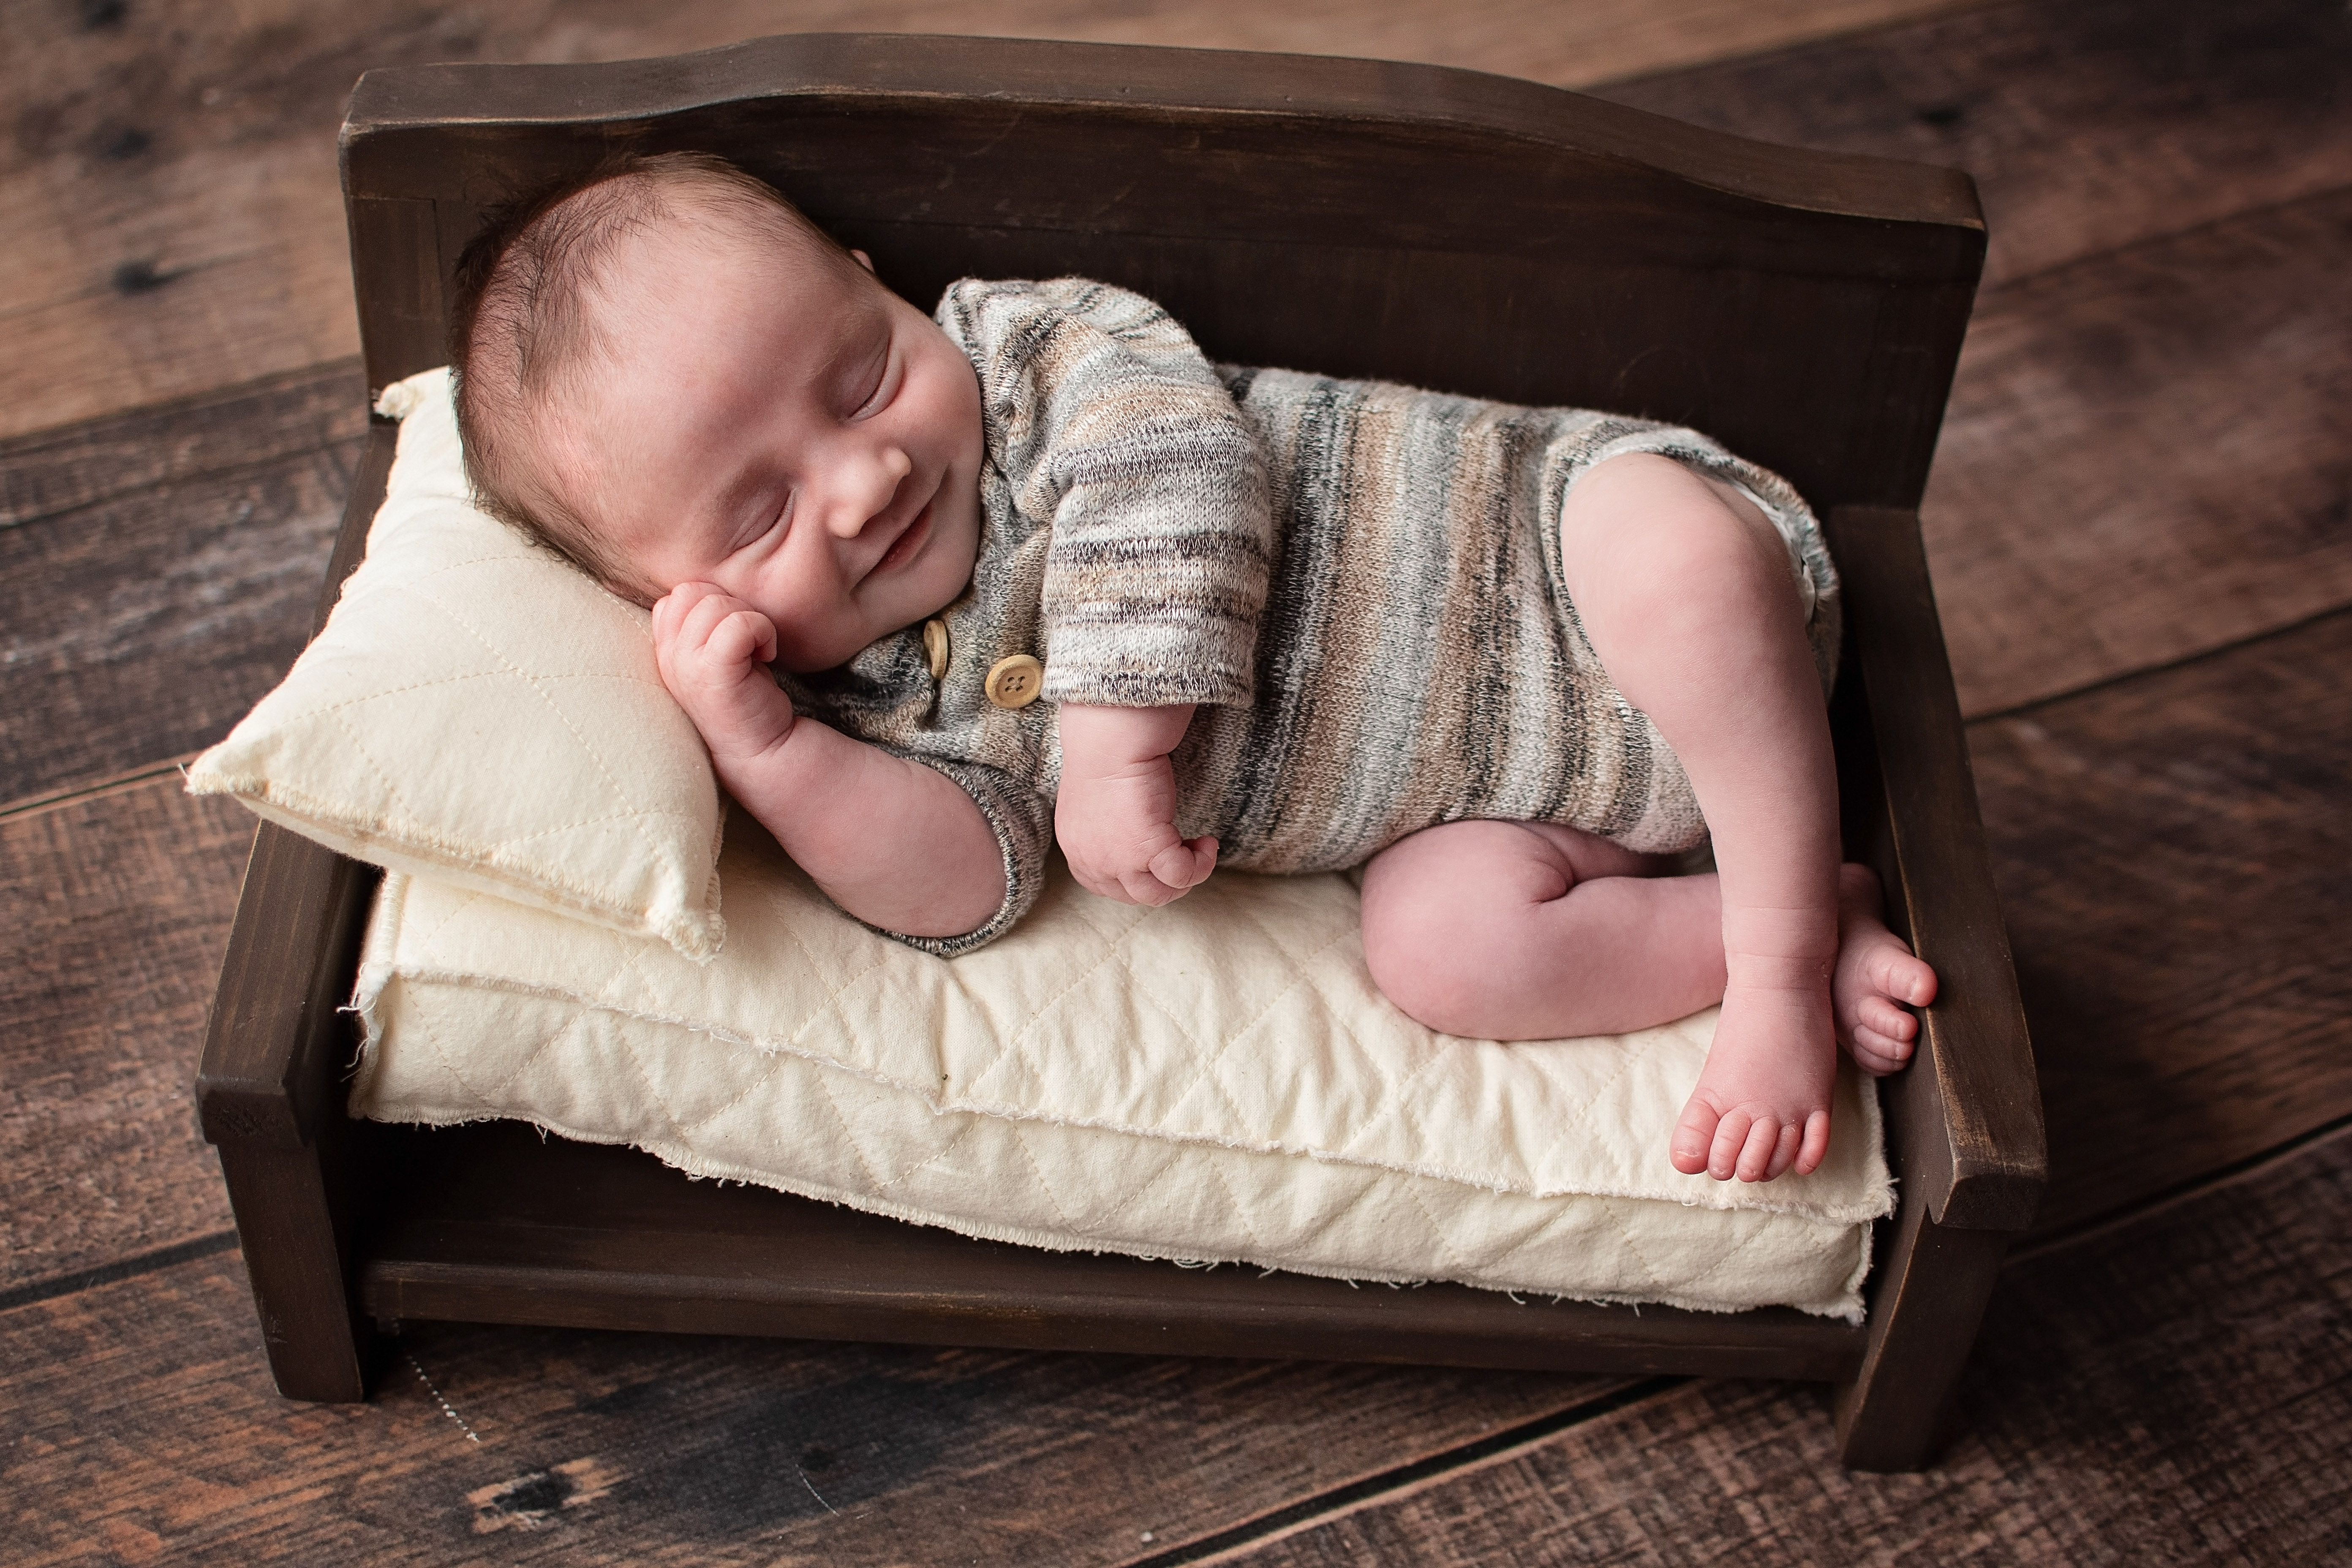 Newborn on bed smiling